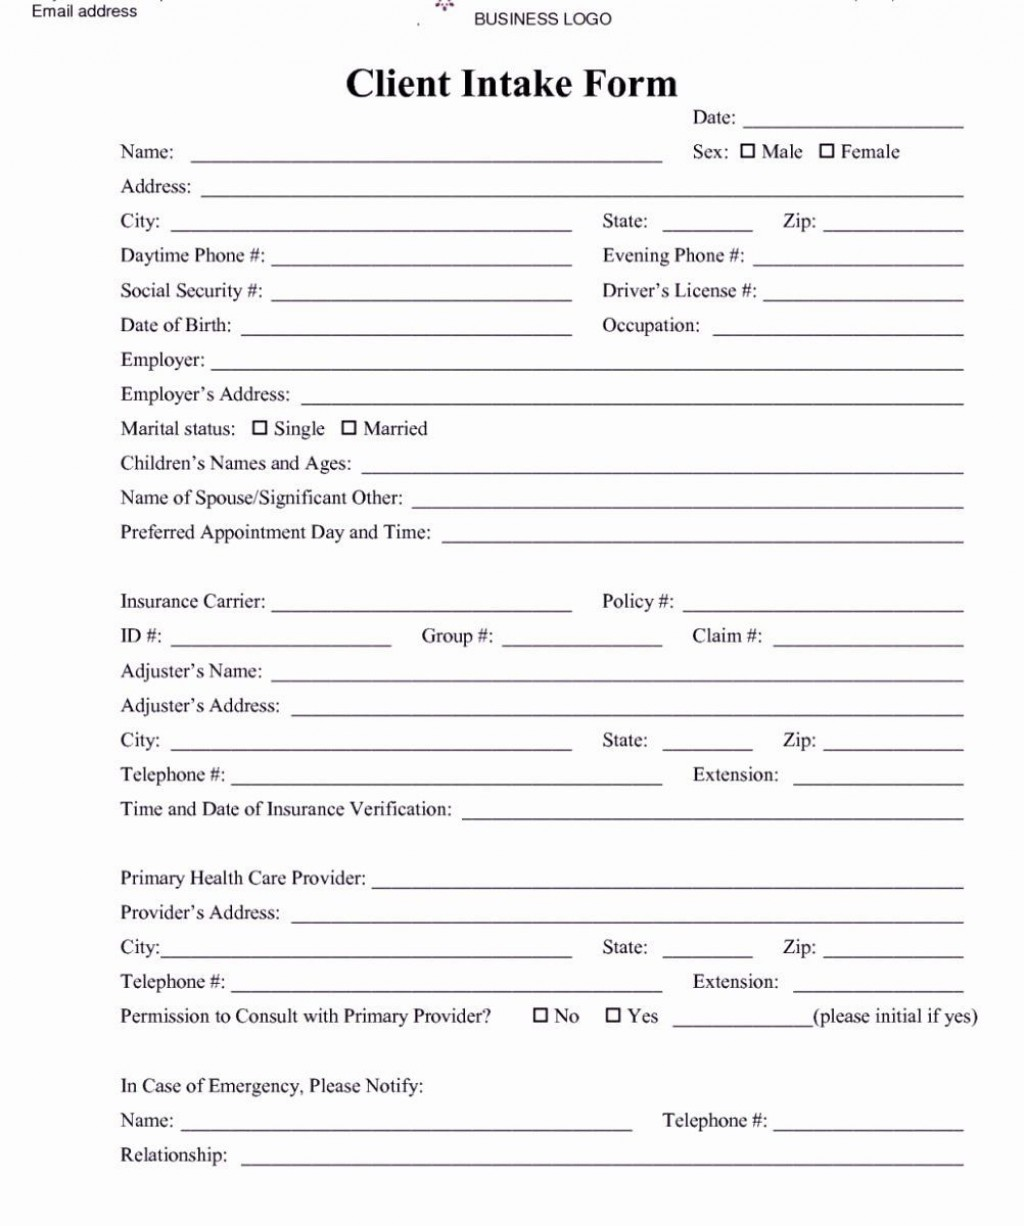 001 Awesome Patient Intake Form Template High Definition  Word Client Excel PdfLarge